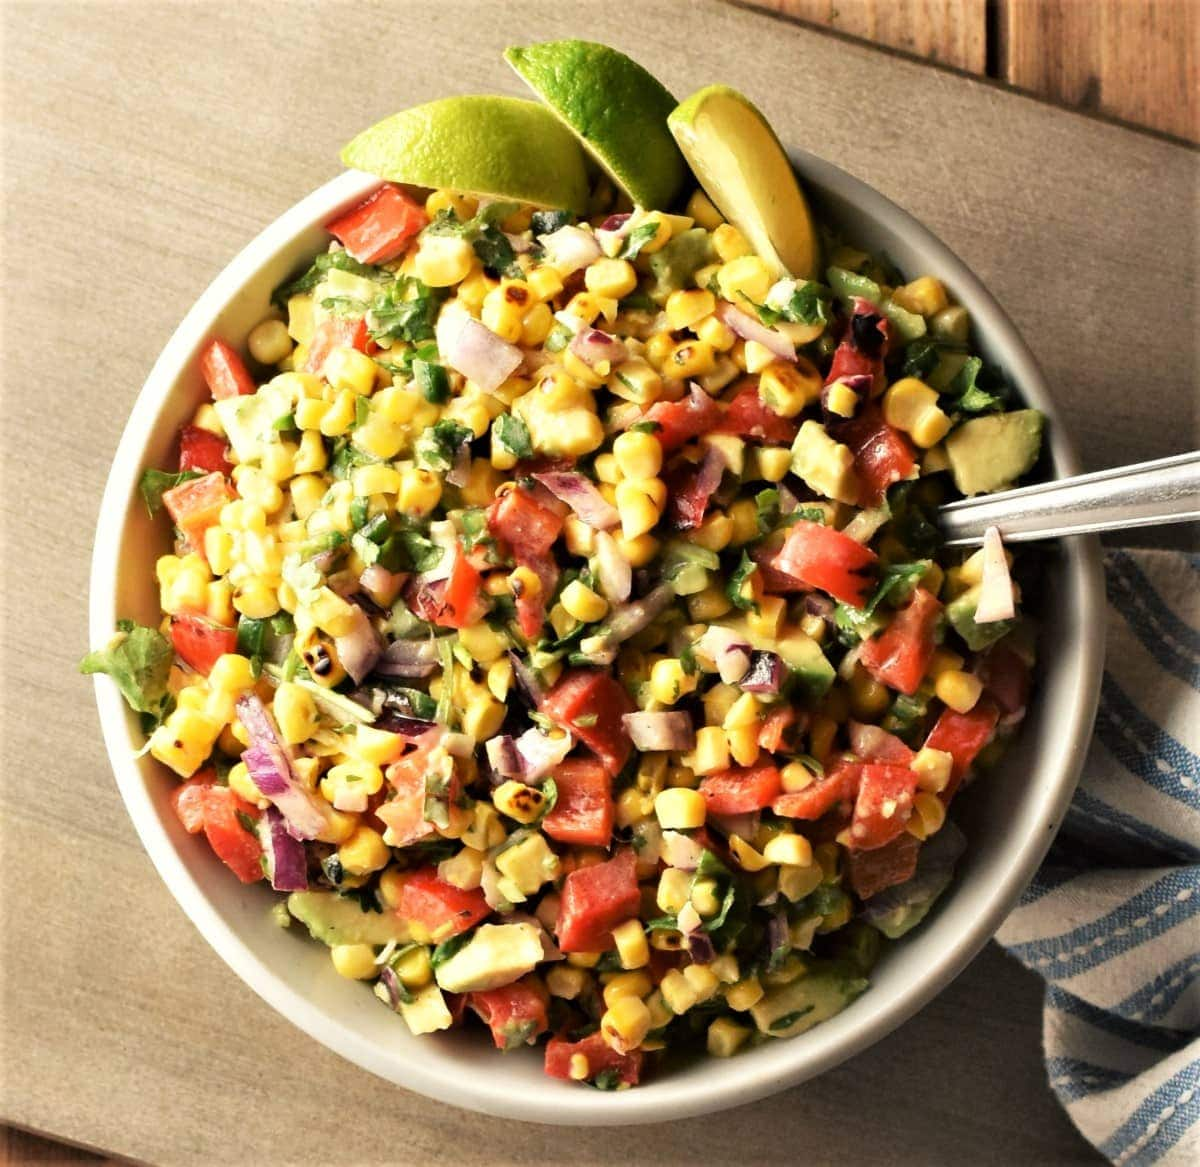 Top down view of corn salsa with lime wedges in bowl with spoon.